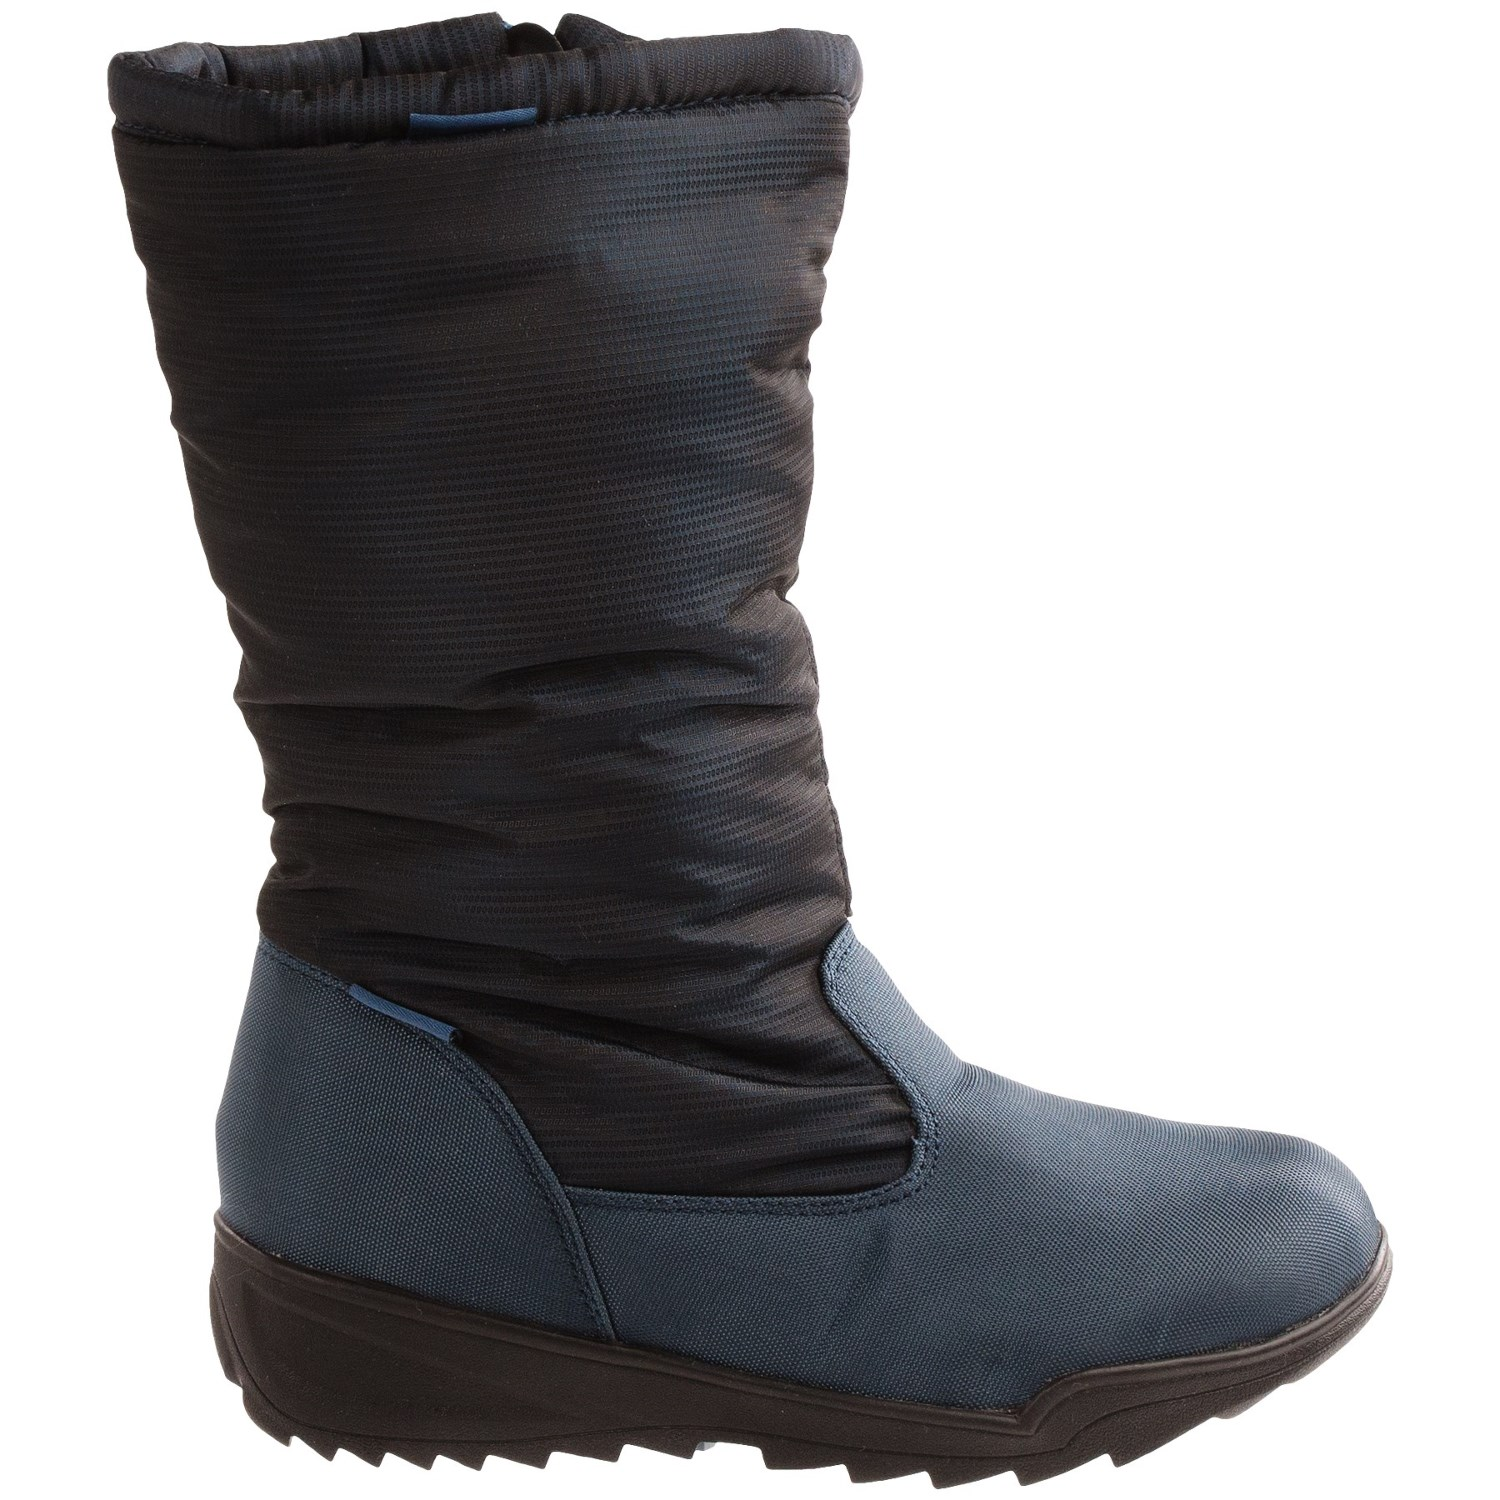 Unique S Waterproof Winter Boots Clearance - 28 Images - Clearance Step Womens Espirit Waterproof ...